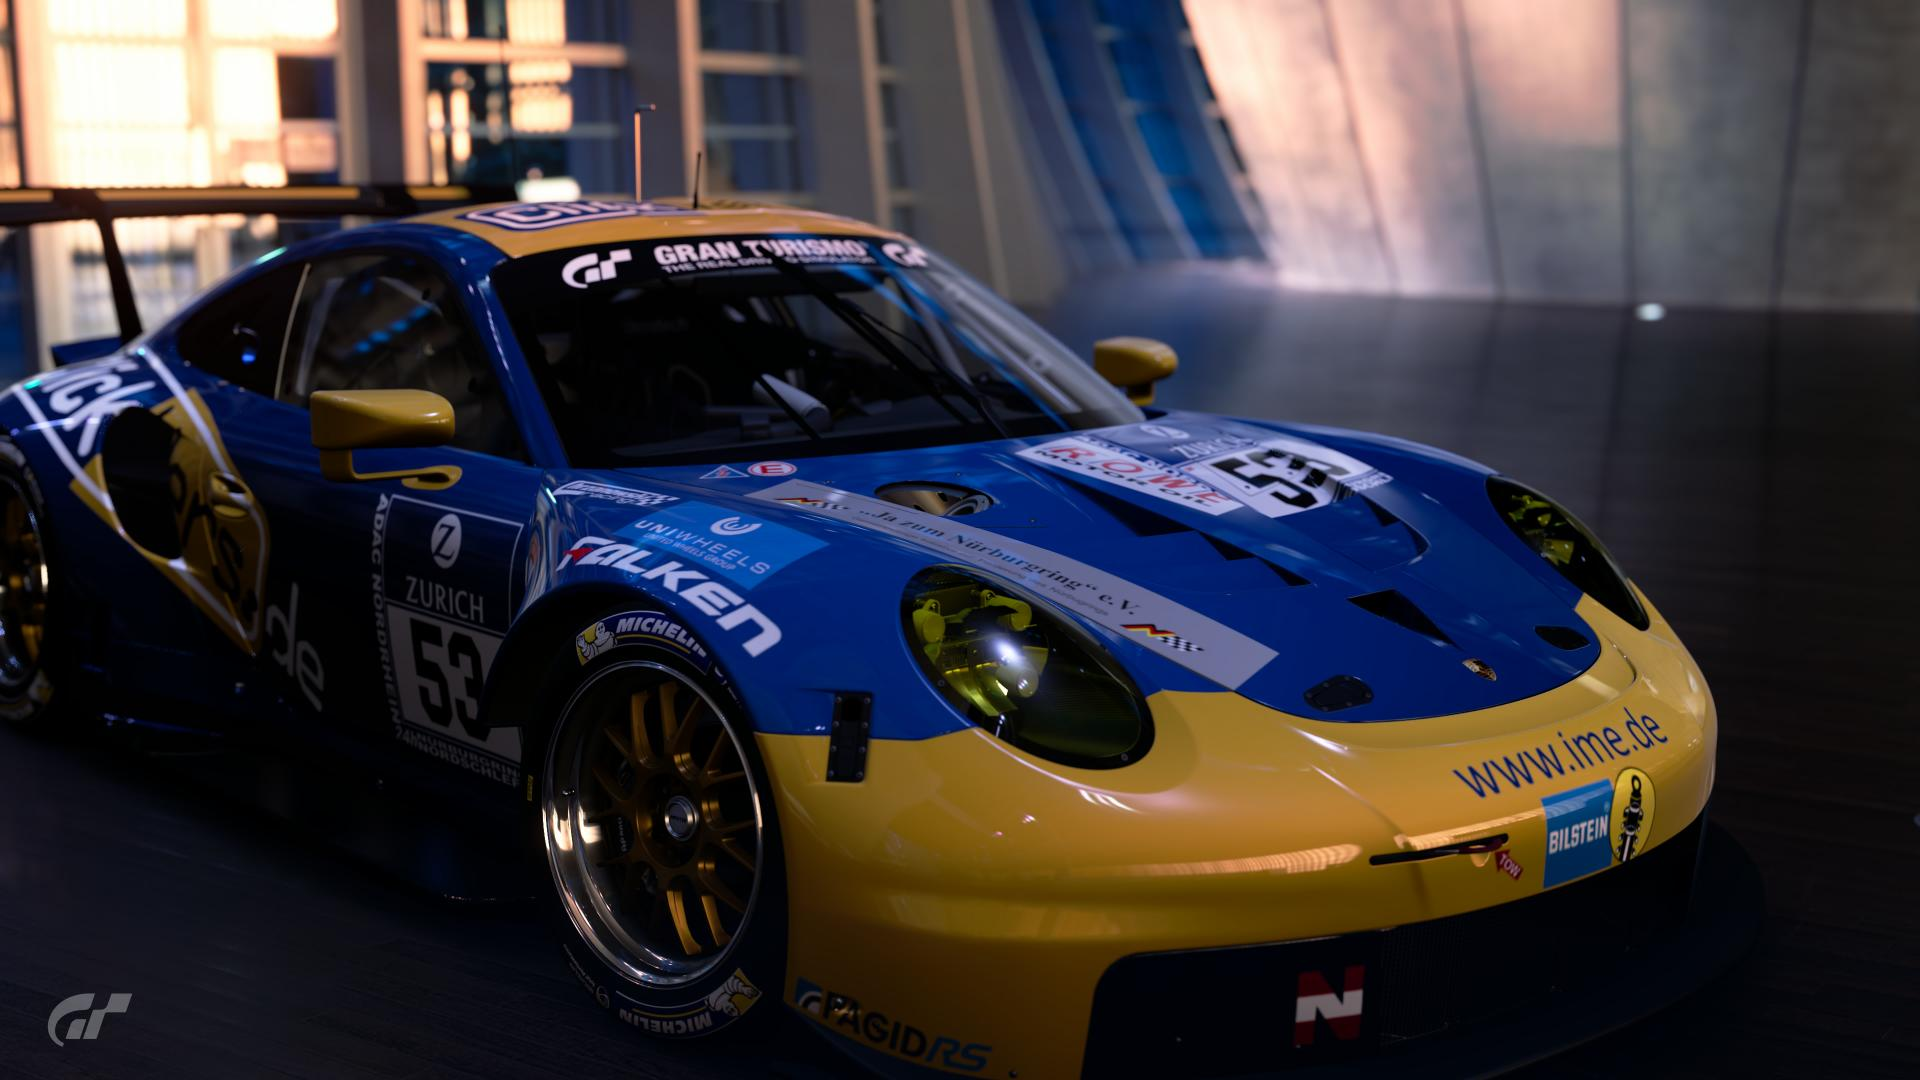 911 RSR Vers Racing Scapes s by Baco0974